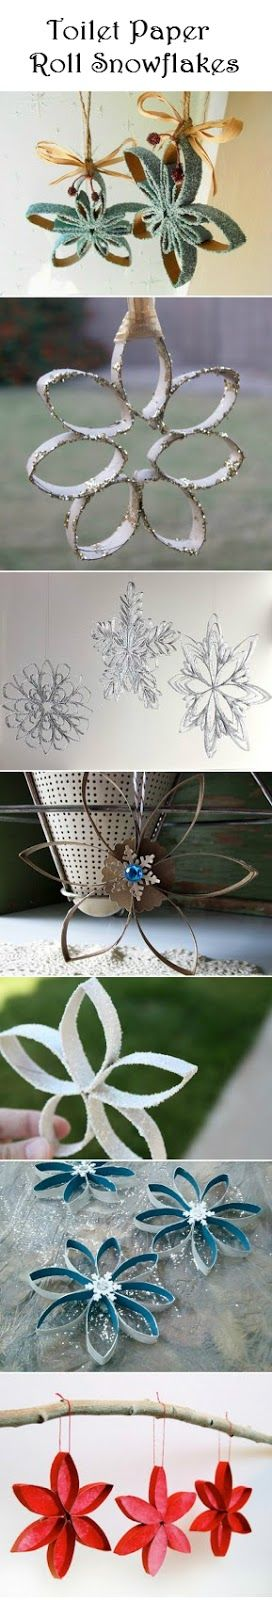 Toilet Paper Roll Snowflakes | Crafts and DIY Community